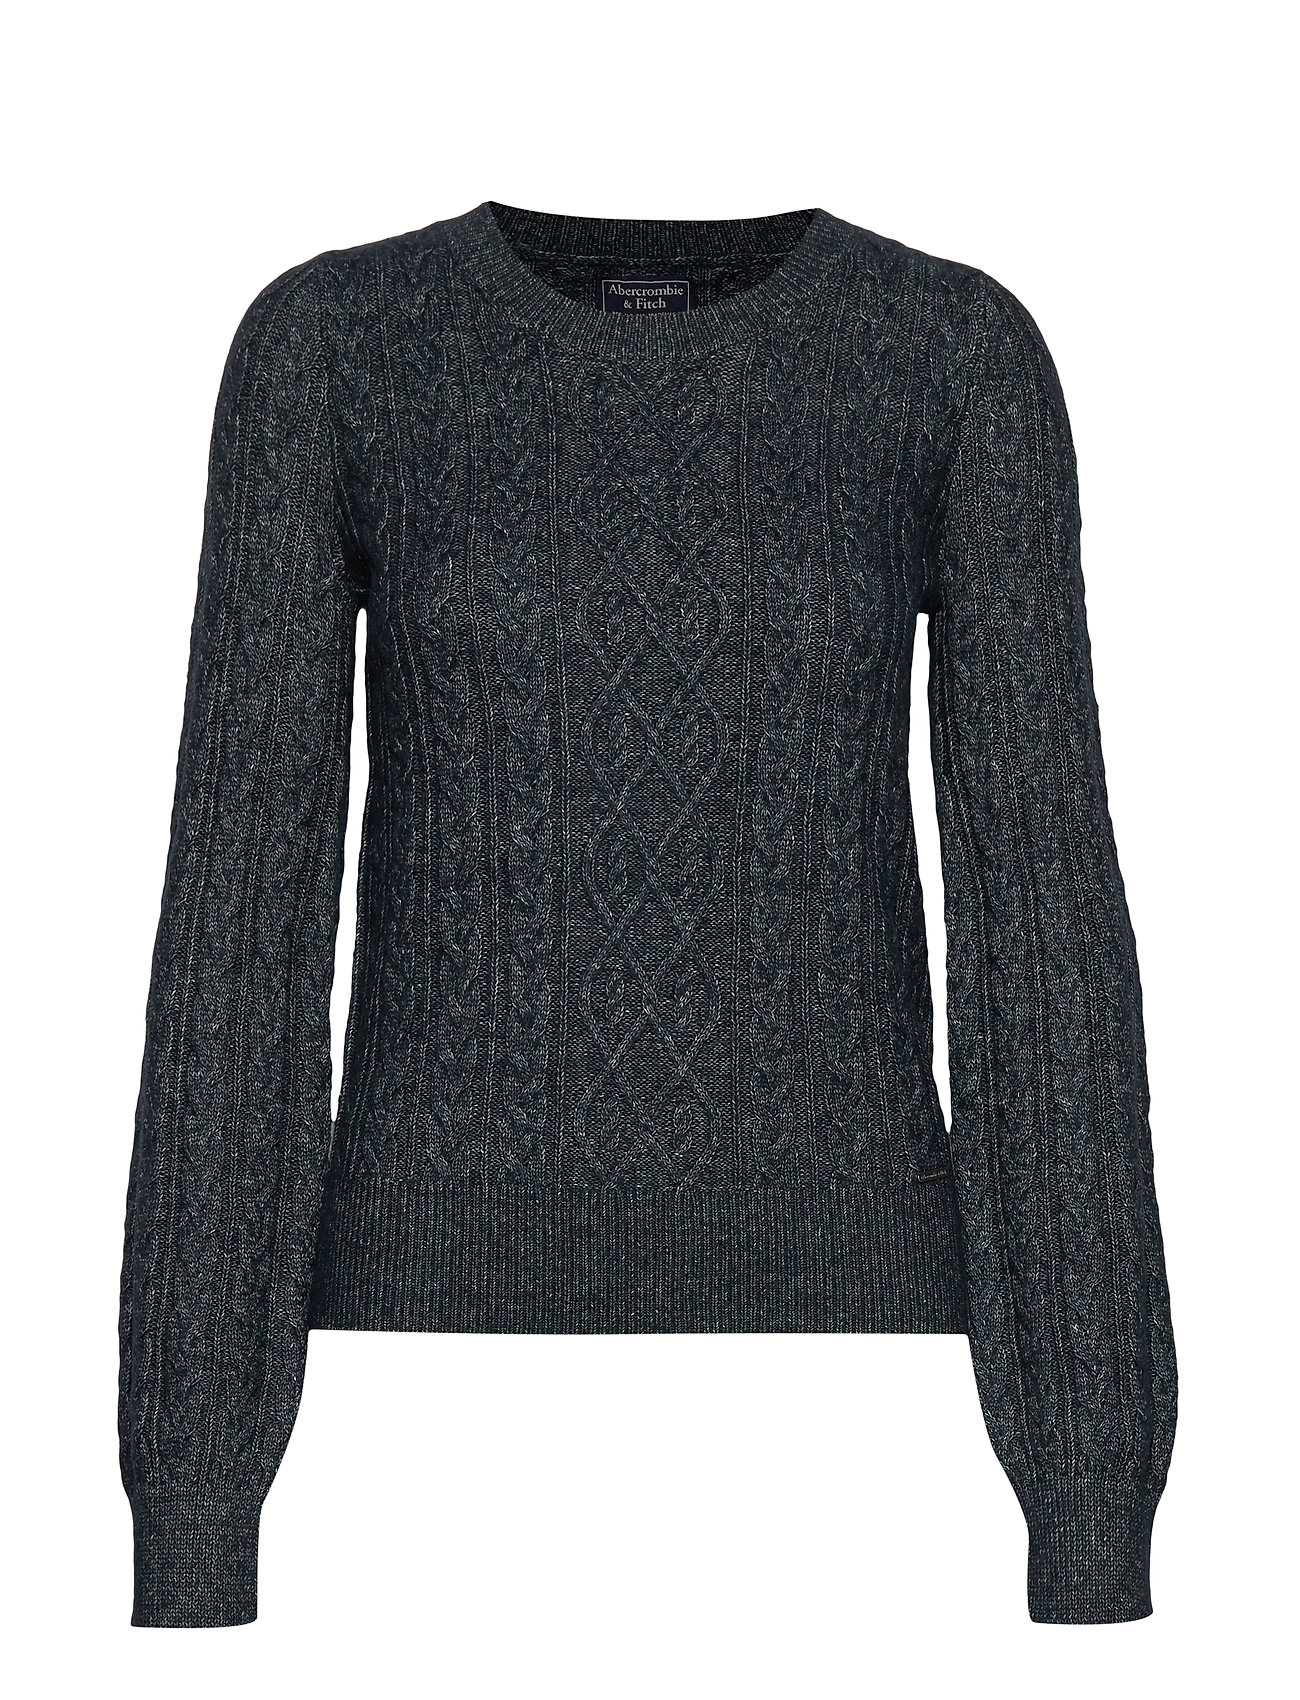 Abercrombie & Fitch Cable Sweater - NAVY SD/TEXTURE